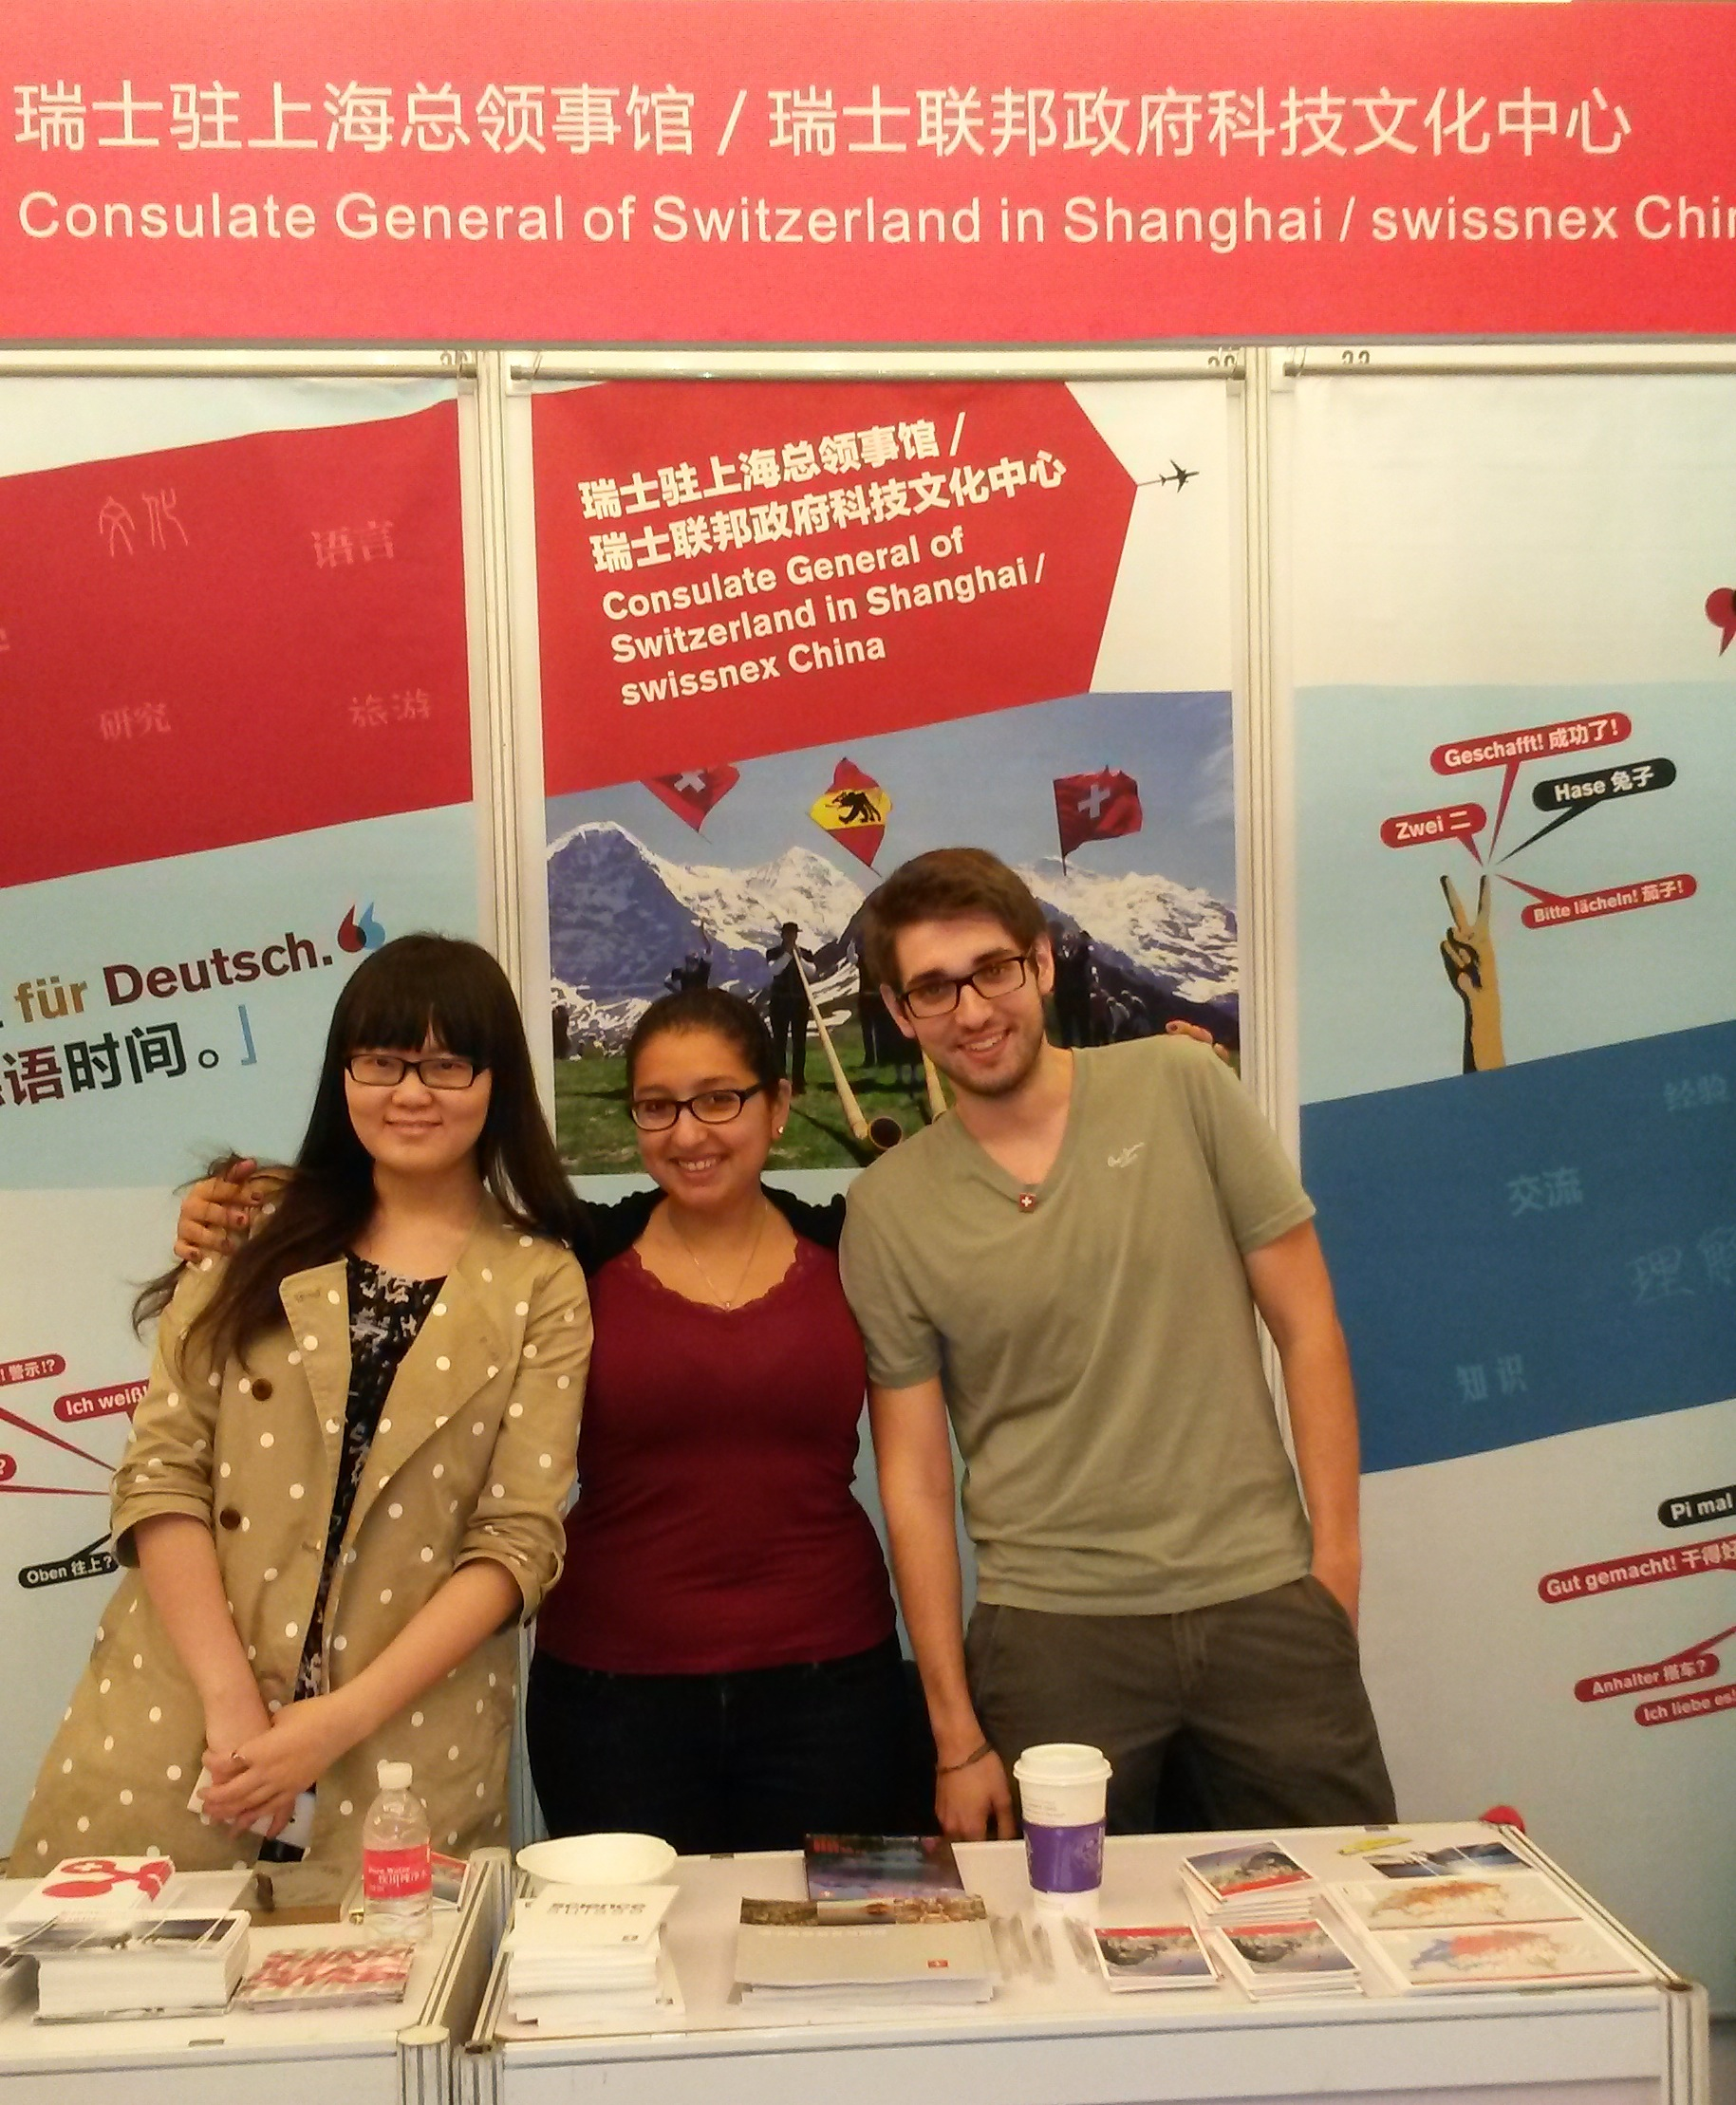 Wenling Yao (left) and the author (middle)